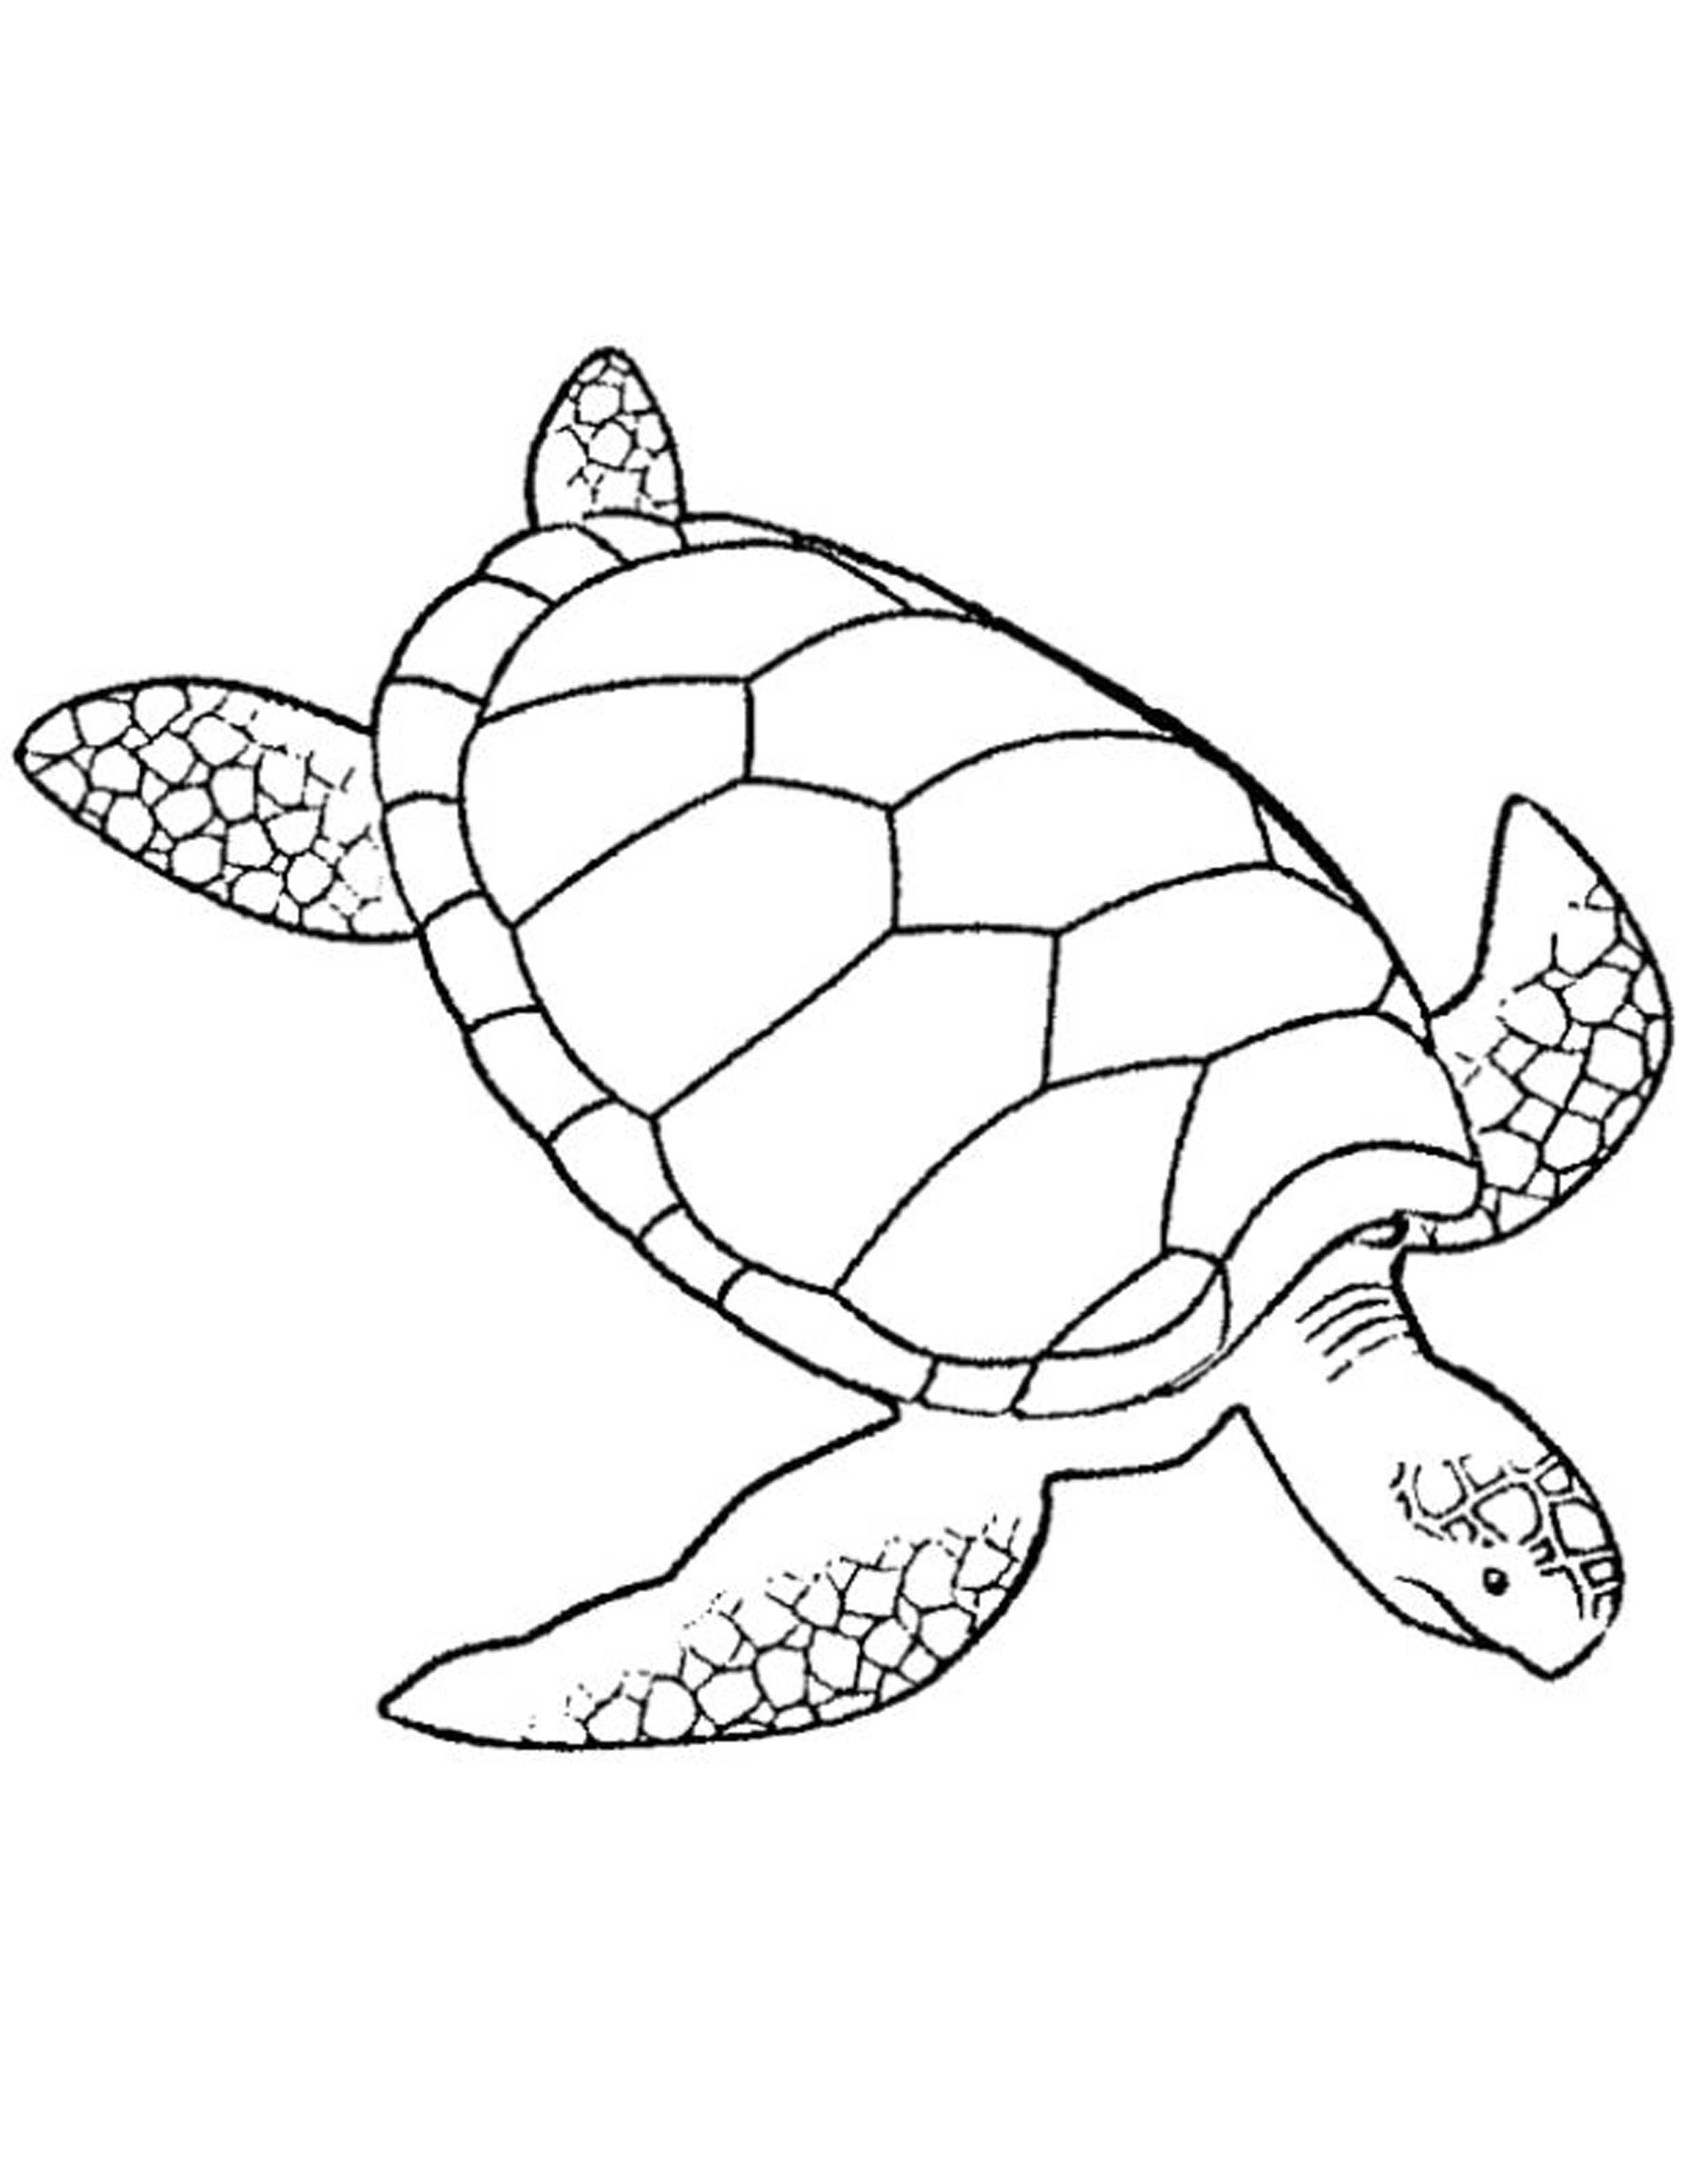 free coloring pages of a turtle | Print & Download - Turtle Coloring Pages as the ...